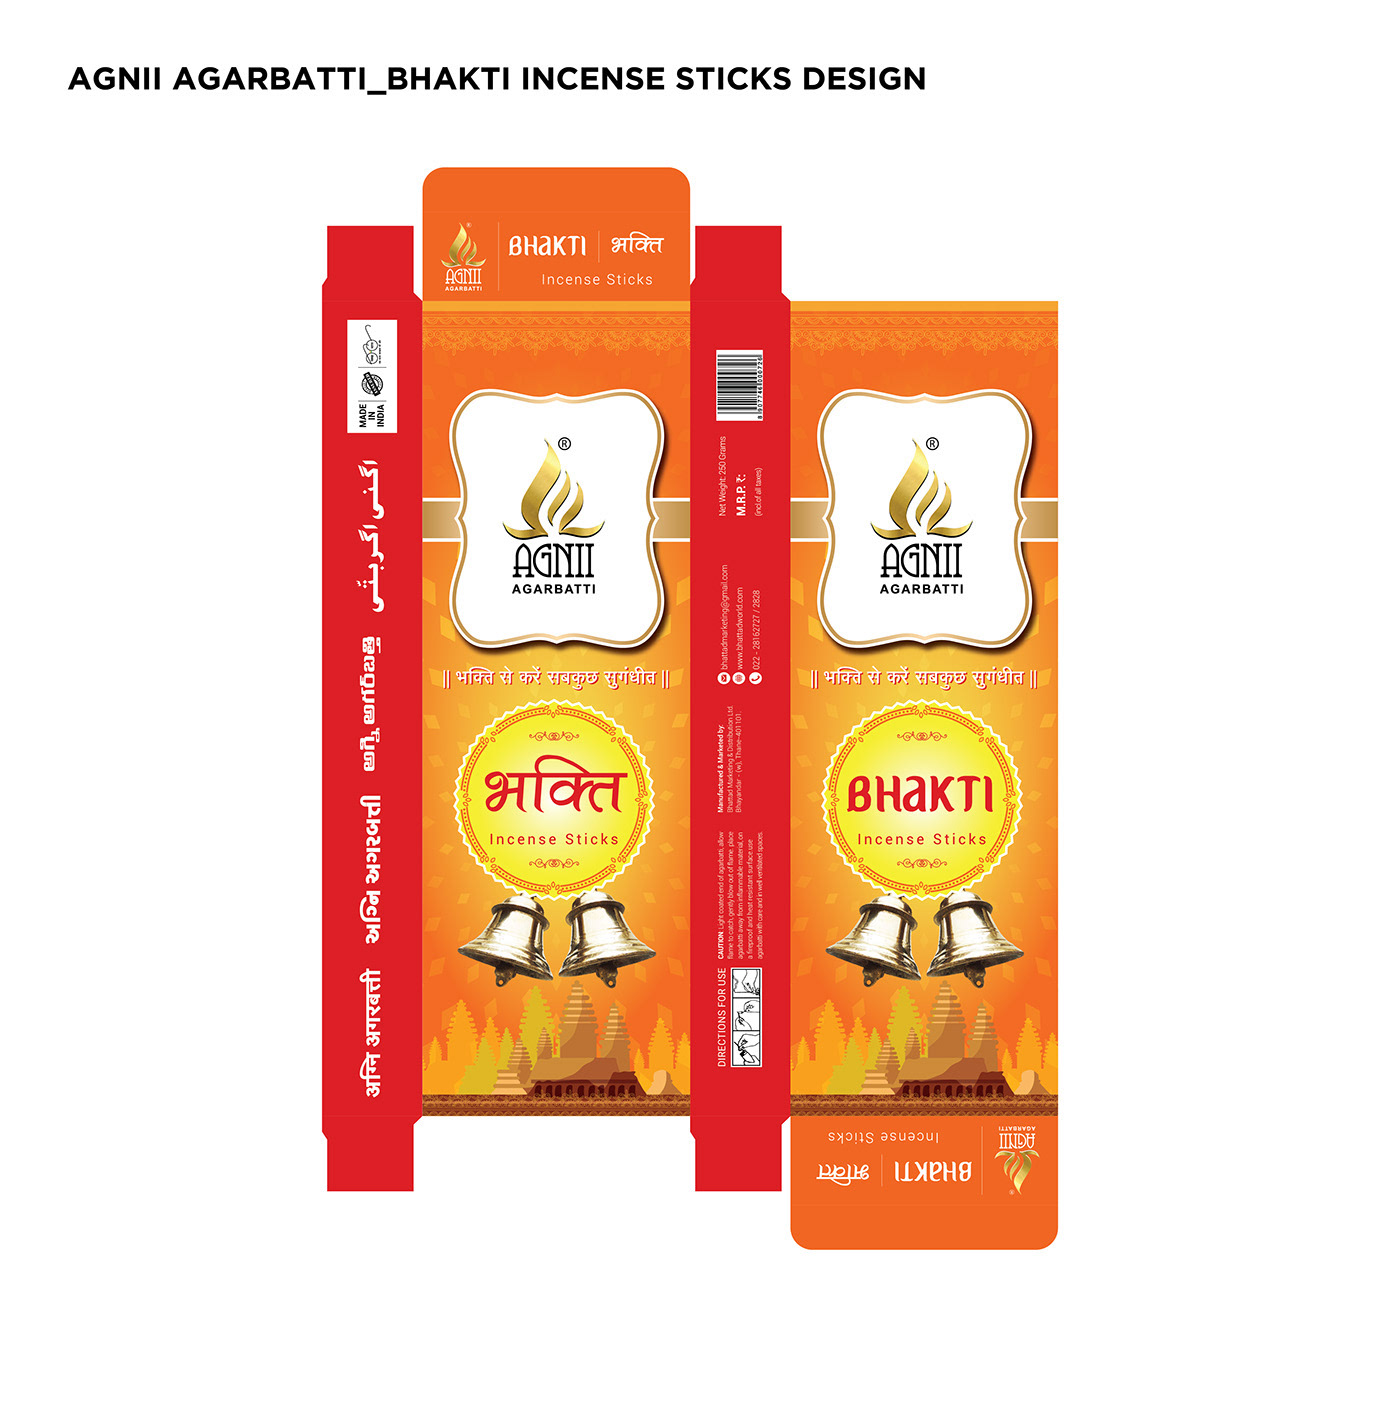 Incense Sticks Projects Photos Videos Logos Illustrations And Branding On Behance